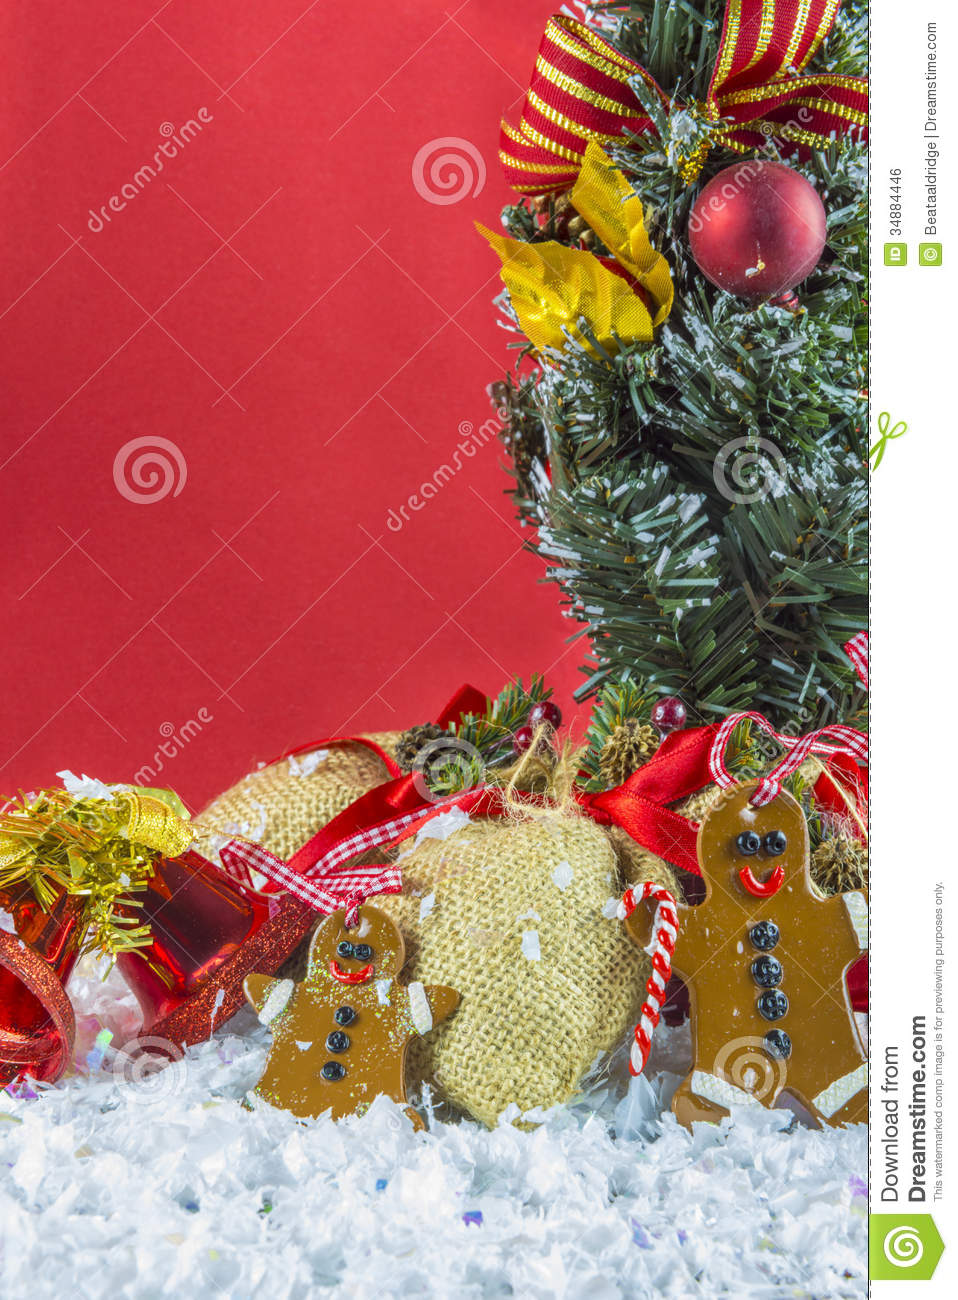 Rustic vintage christmas decorations royalty free stock for Vintage rustic christmas decorations